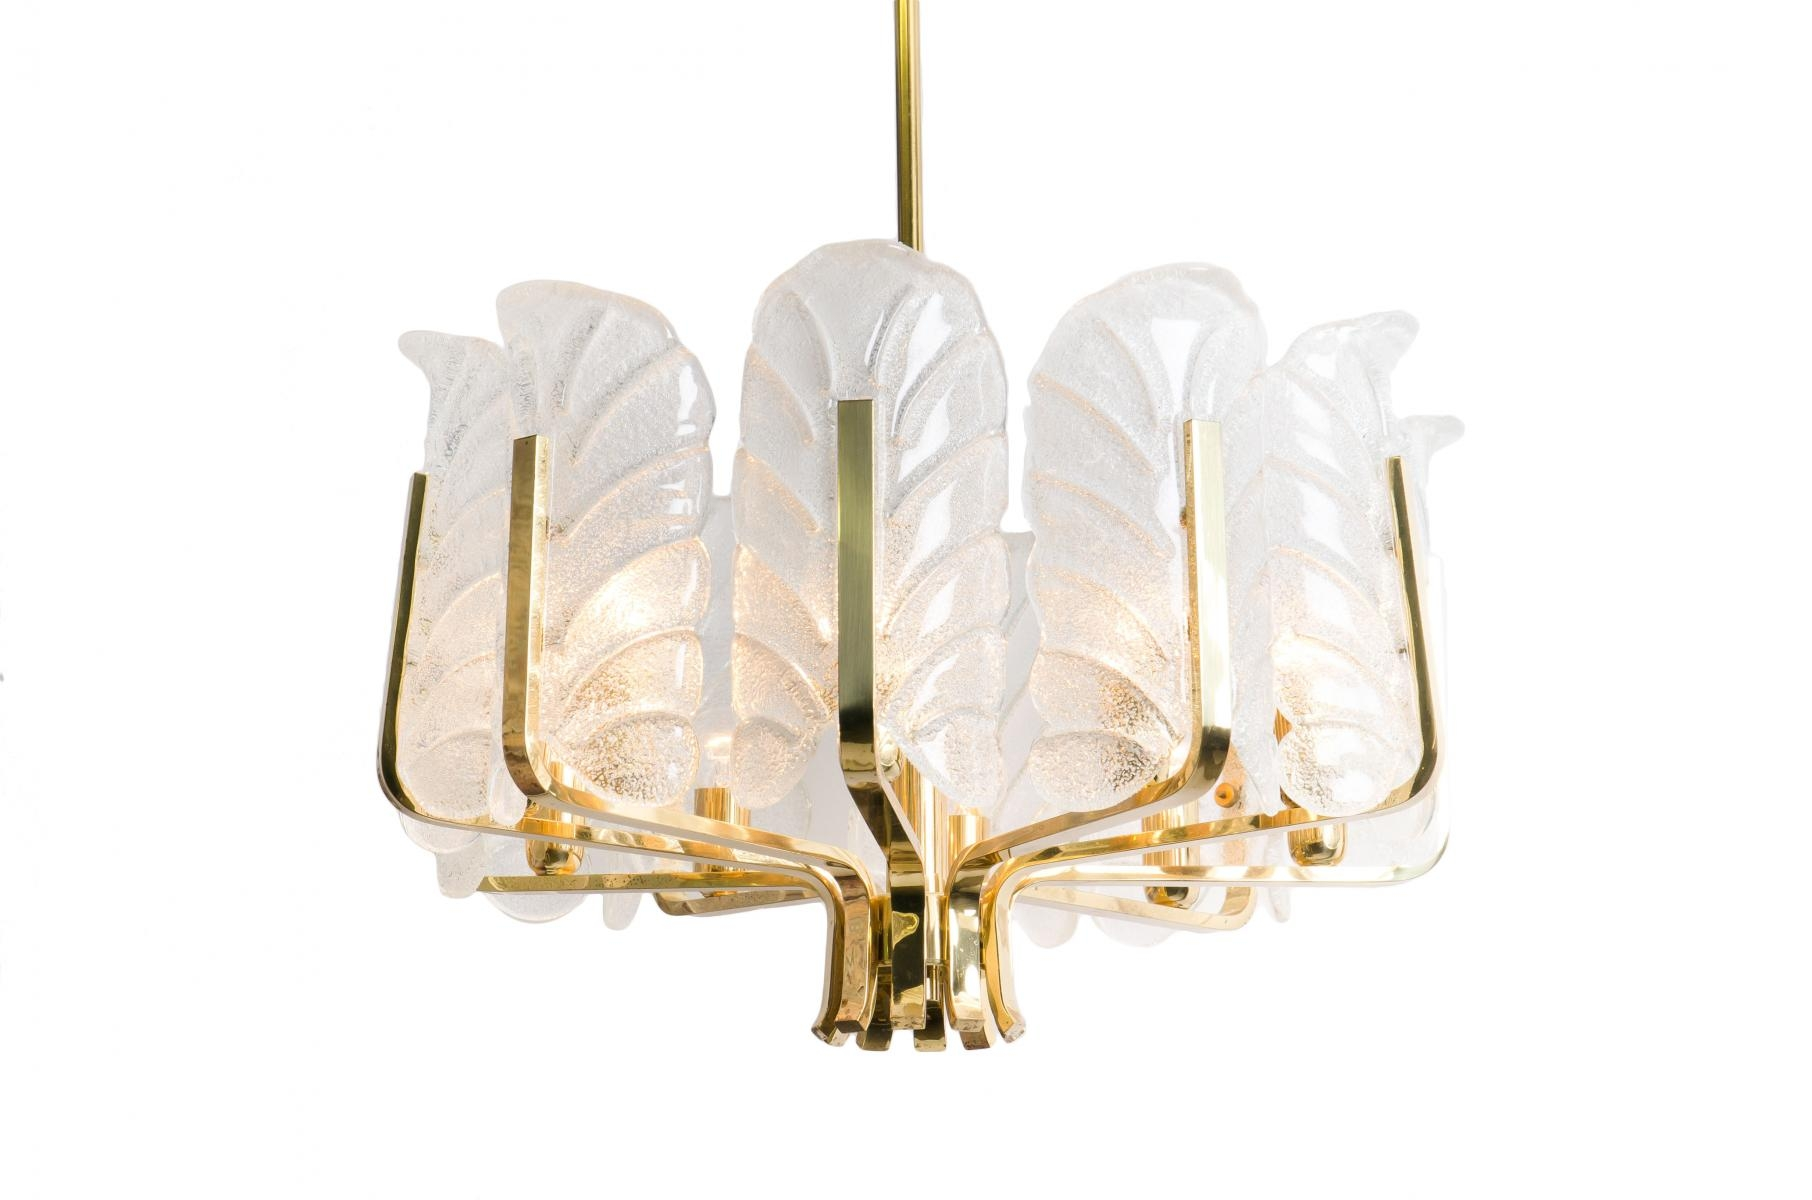 Glass Brass Chandeliers Carl Fagerlund For Orrefors 1960s Within Brass Chandeliers (View 8 of 15)